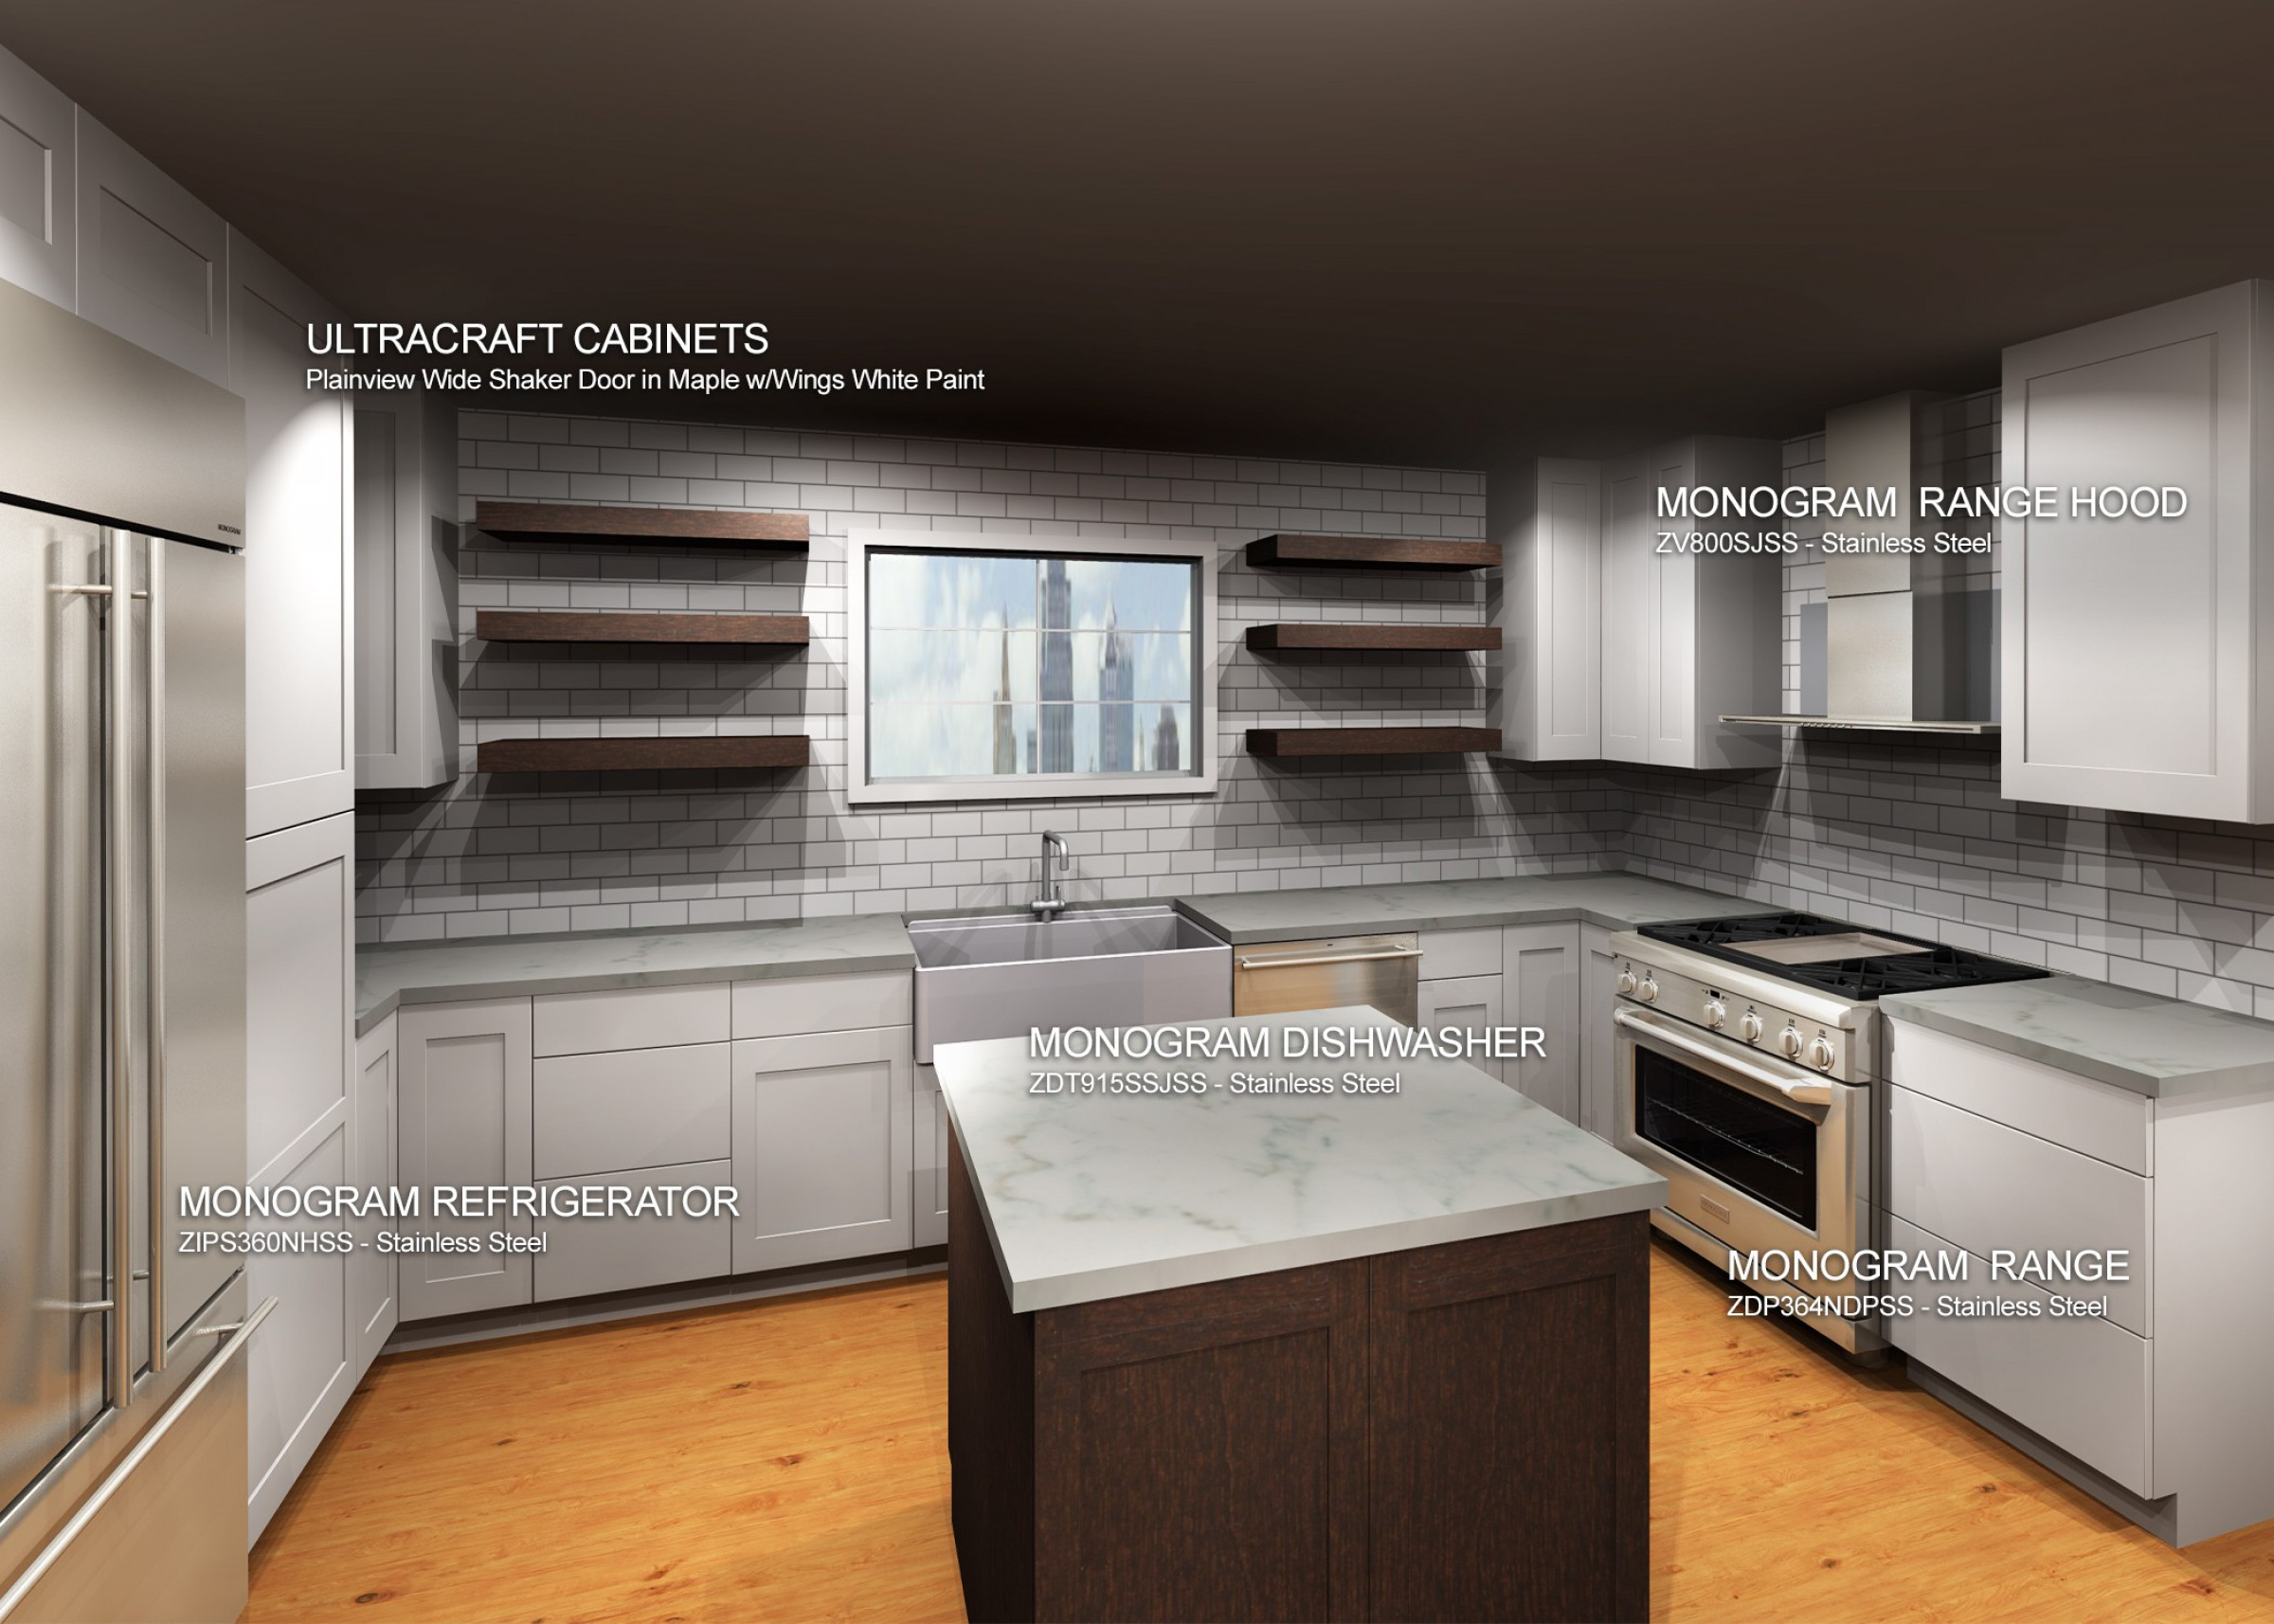 Ultracraft Cabinets with Monogram Appliance Package